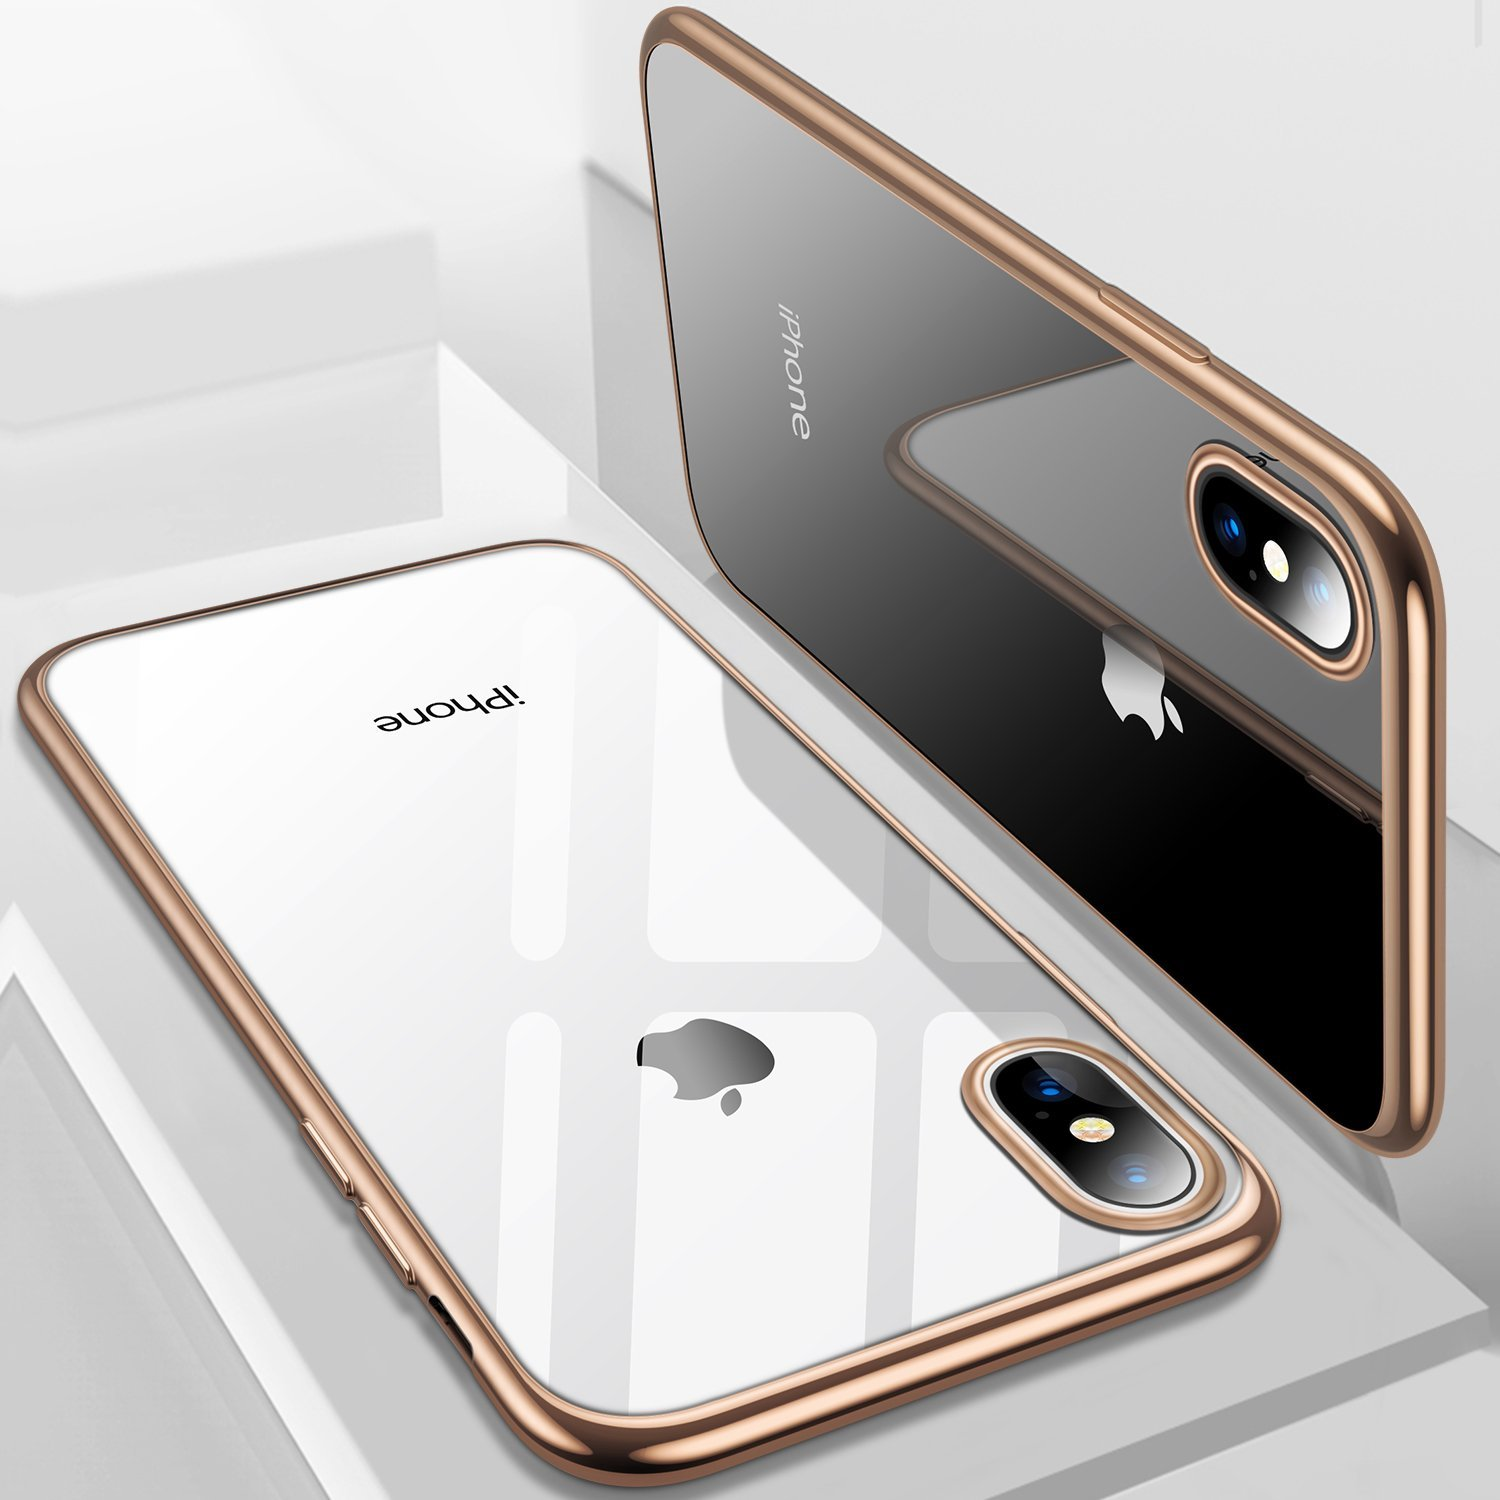 Njjex Crystal Clear Cases Cover For Apple iPhone XS Max / iPhone XS / iPhone X, Njjex Soft TPU Thin Cover with Transparent Edge Ultra Slim Case -Blue